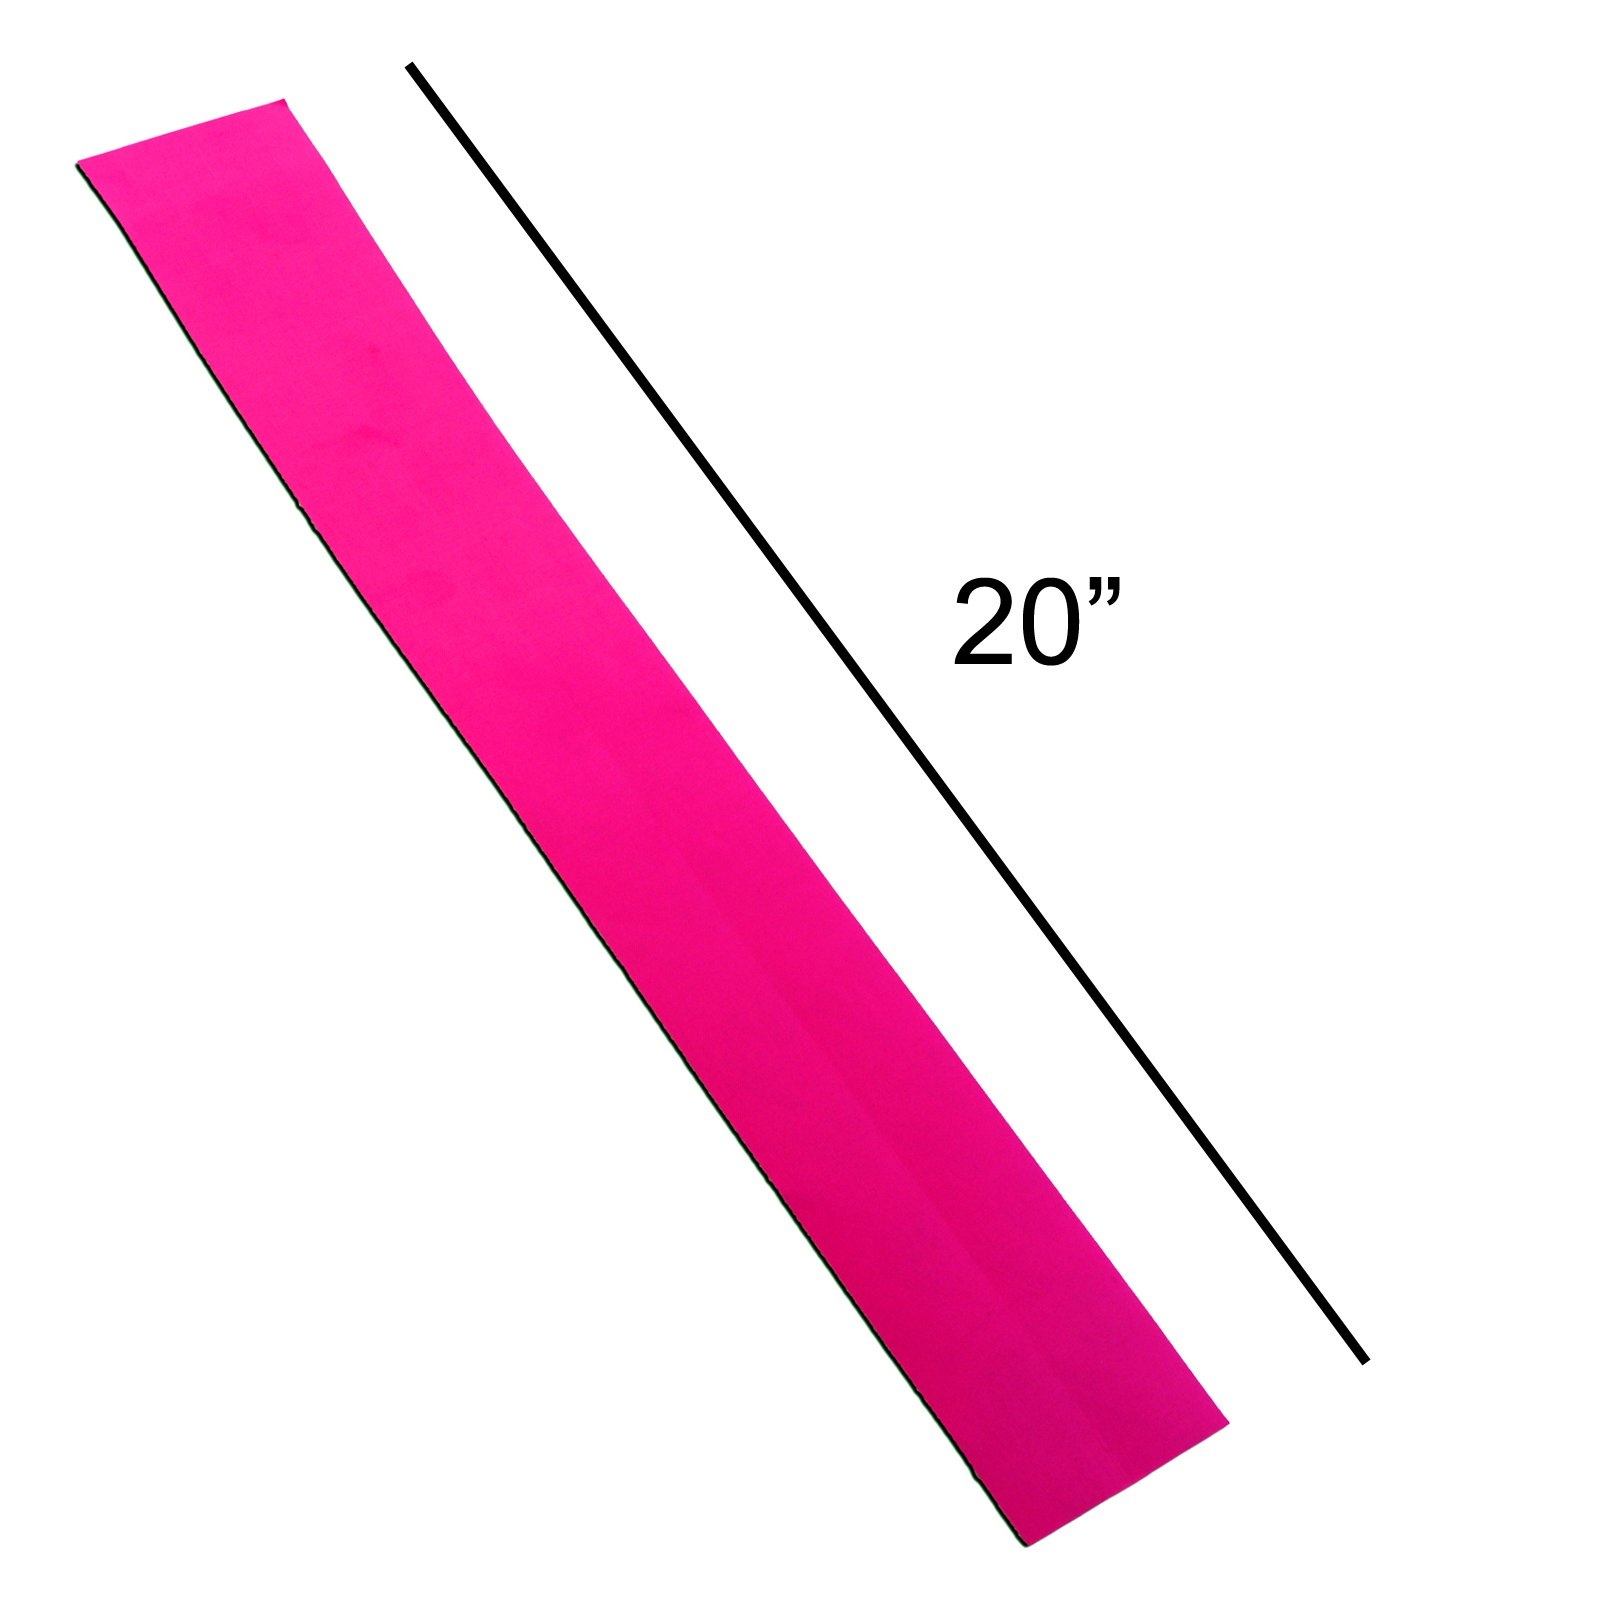 """Gear Aid Tenacious Tape Nylon Repair Tape for Fabric and Vinyl, 3"""" x 20"""", (Pink) by Gear Aid (Image #7)"""